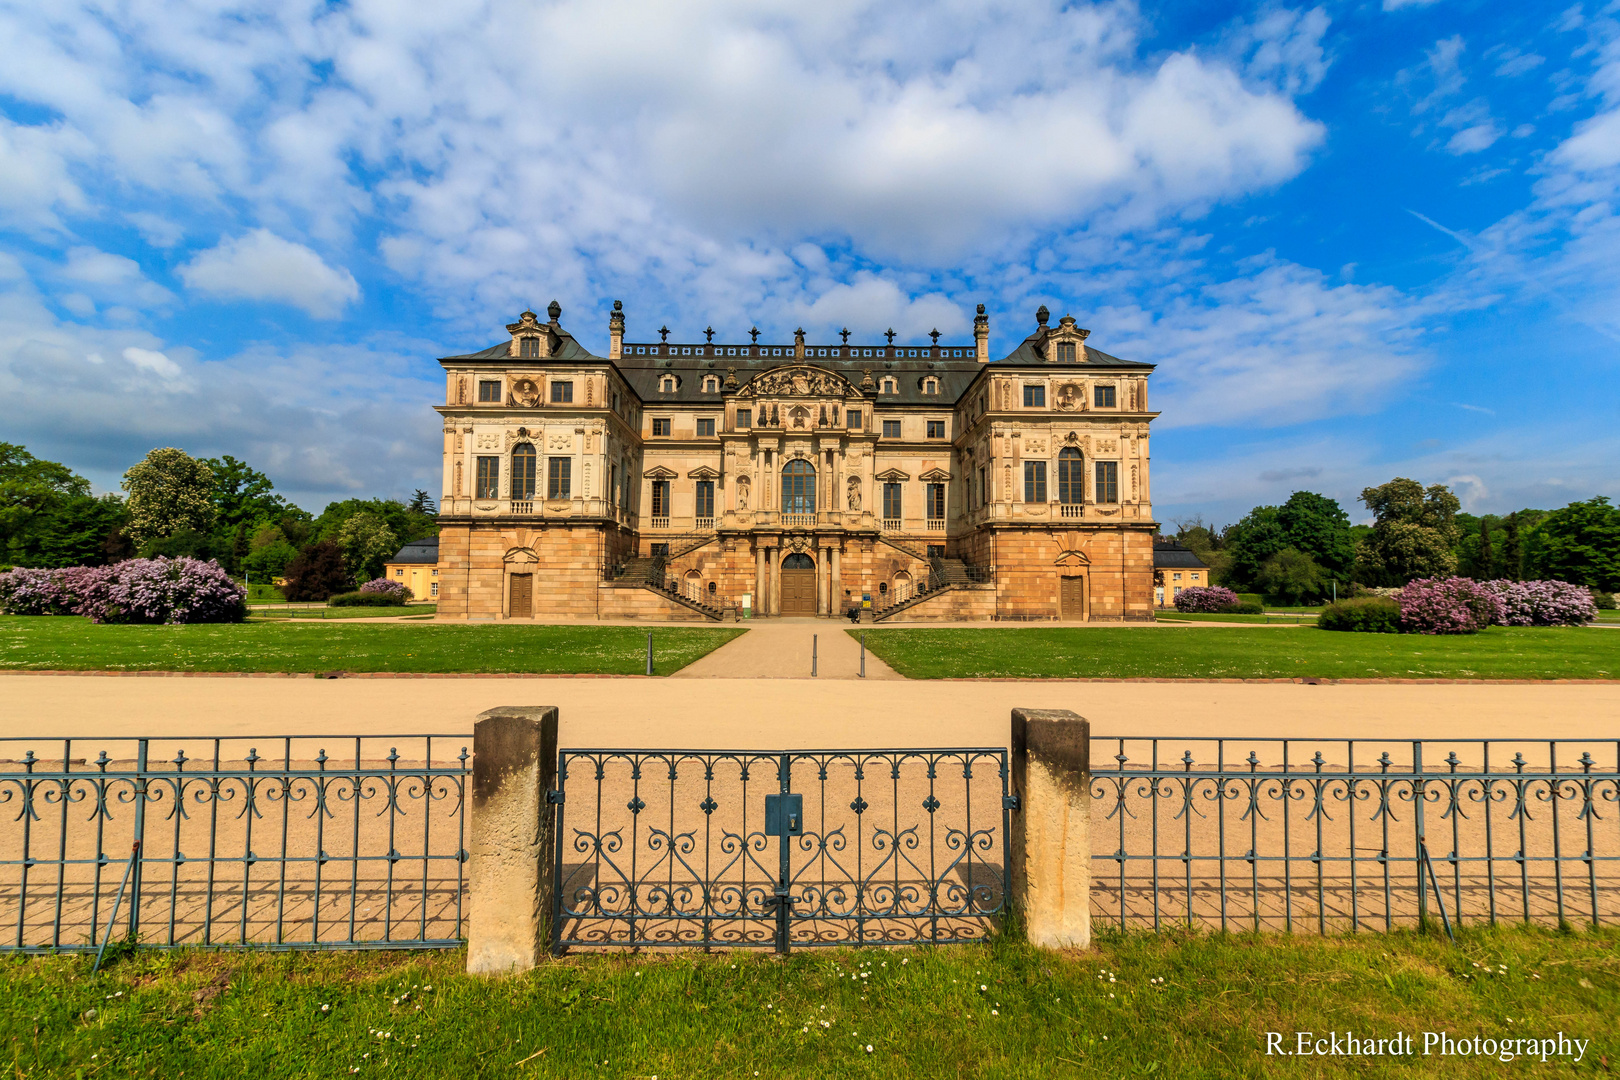 palais gro er garten dresden foto bild architektur deutschland europe bilder auf fotocommunity. Black Bedroom Furniture Sets. Home Design Ideas